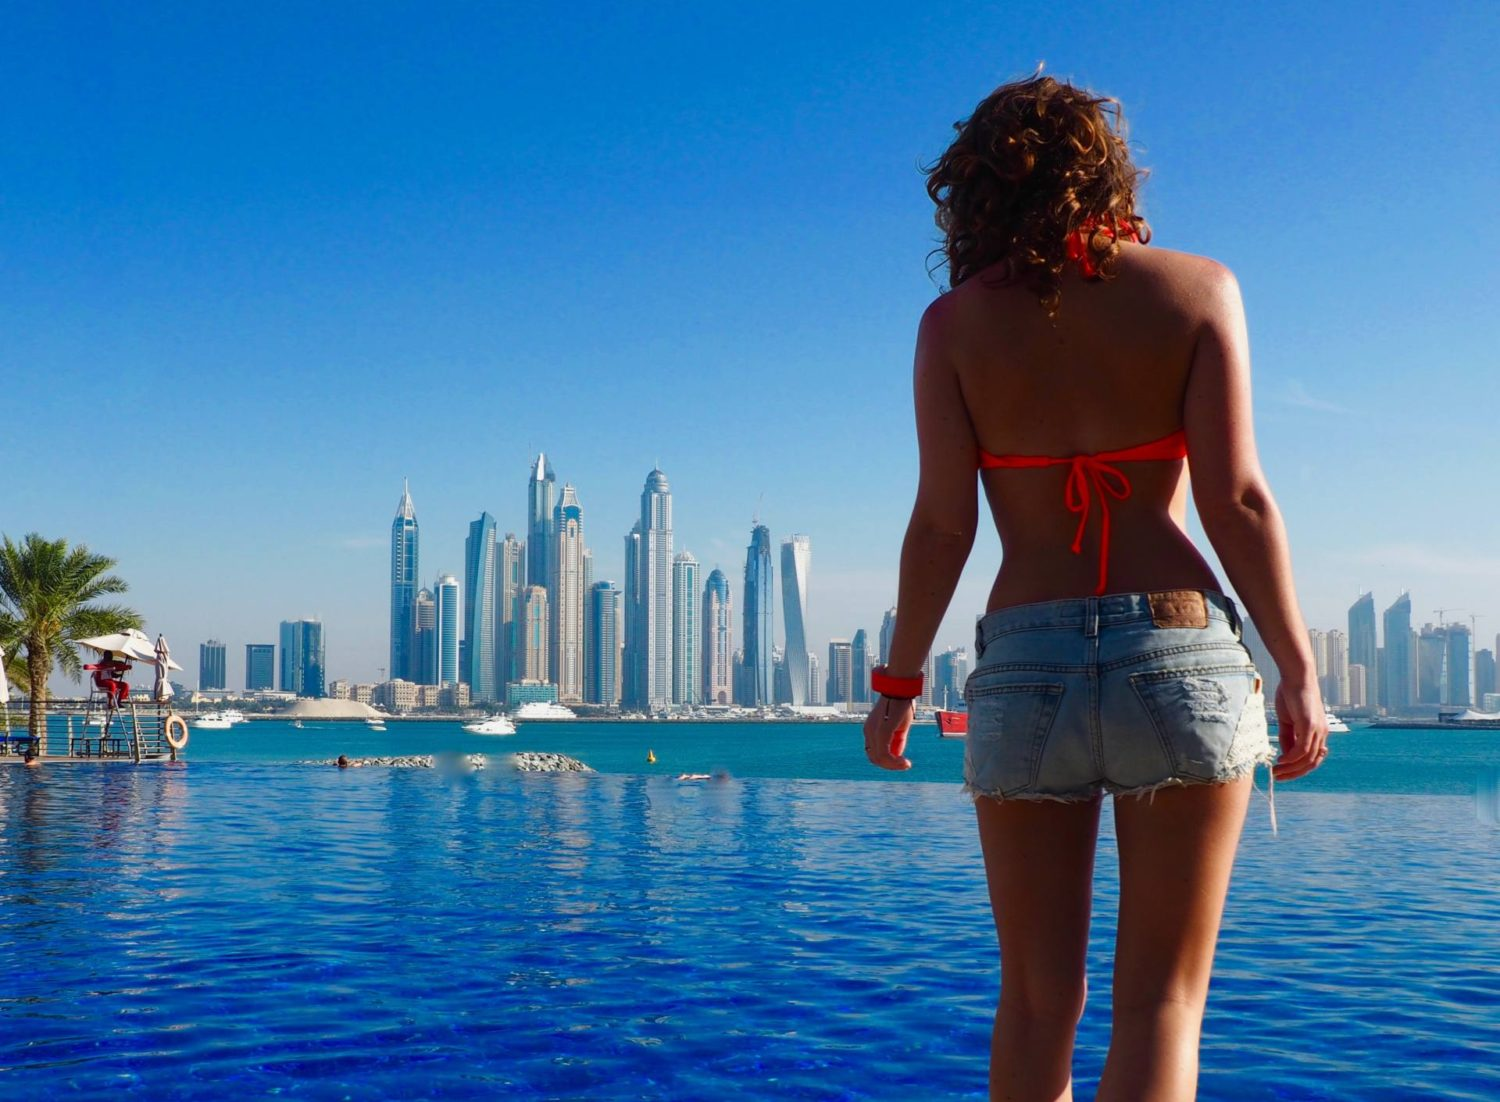 dubai girl marina pool